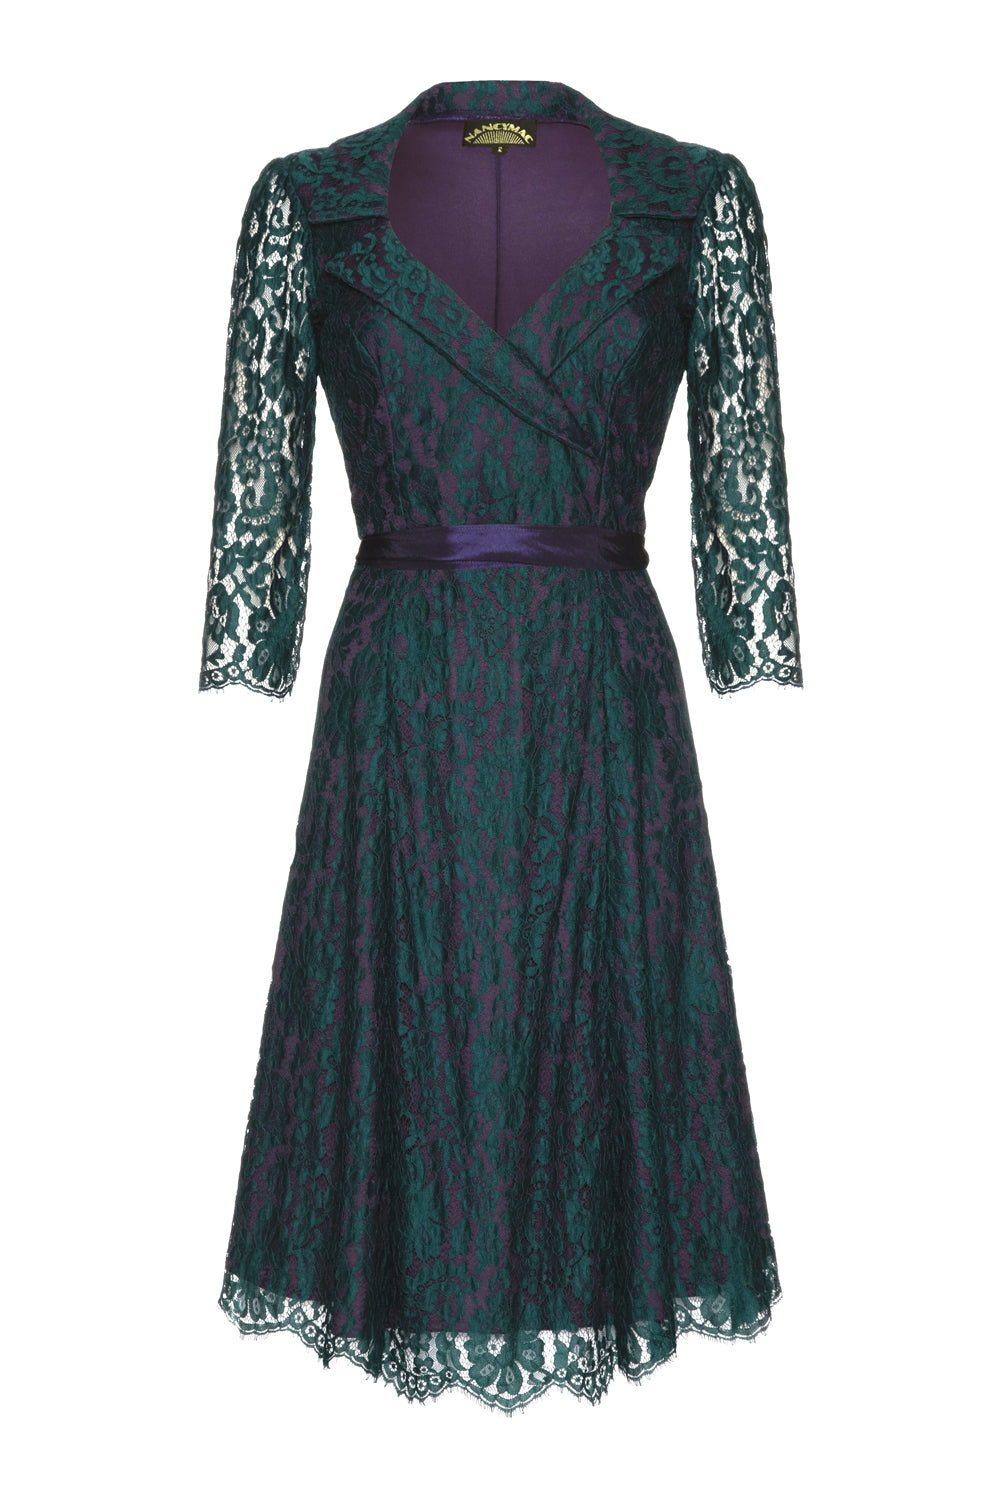 Gabrielle Dress in Emerald and Blackcurrant Lace